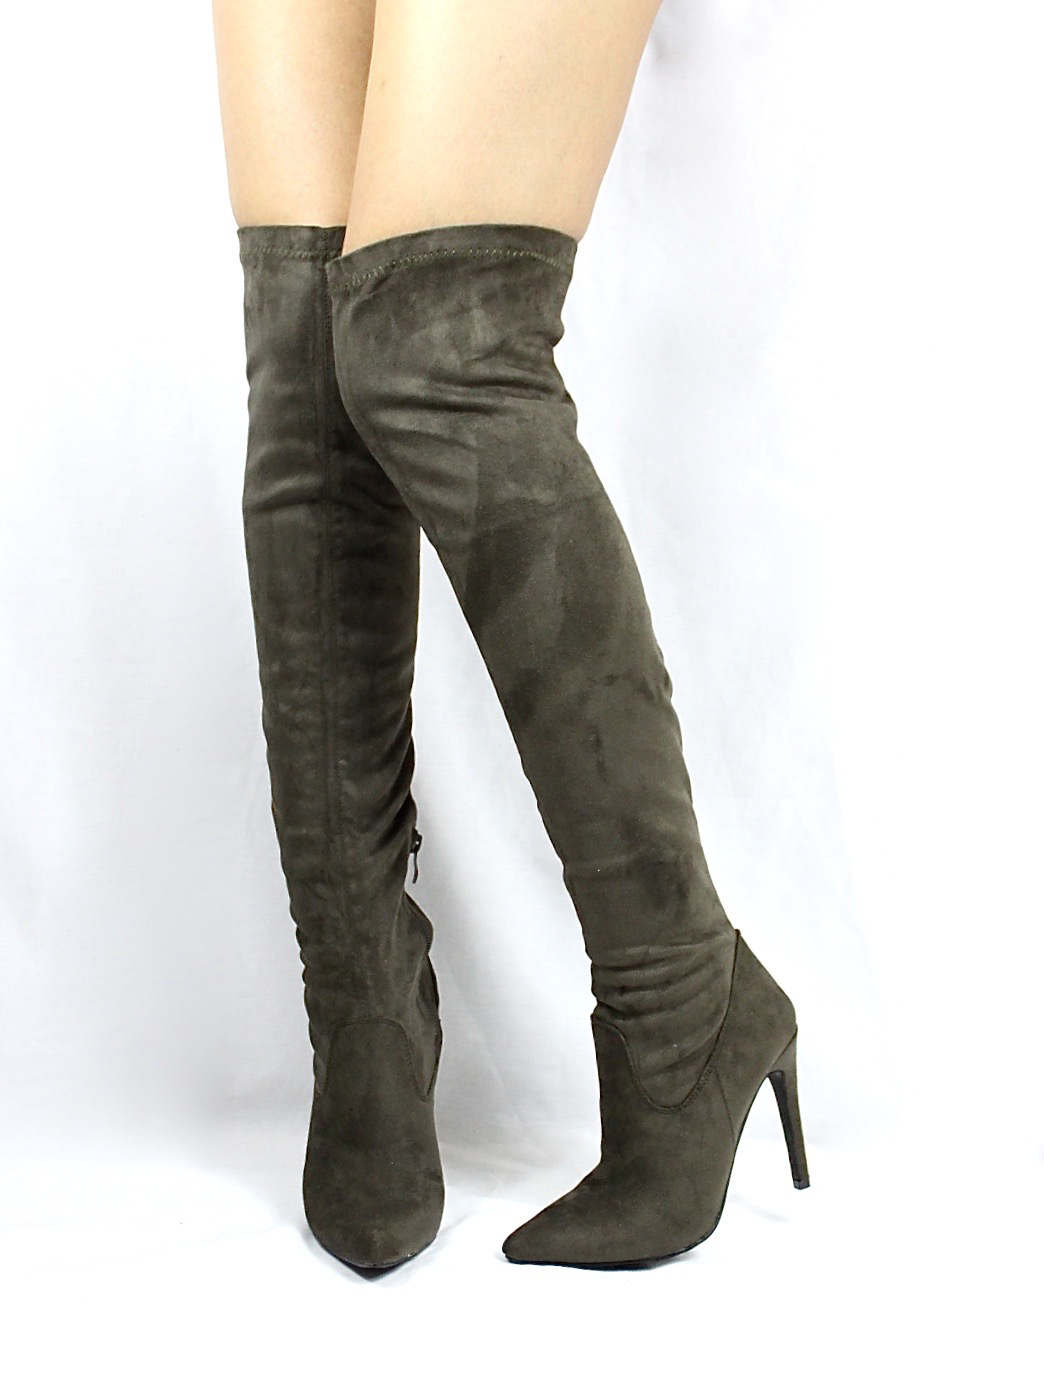 Pointy Toe Stiletto Heel Over The Knee Olive Thigh High Dress Boots-3561